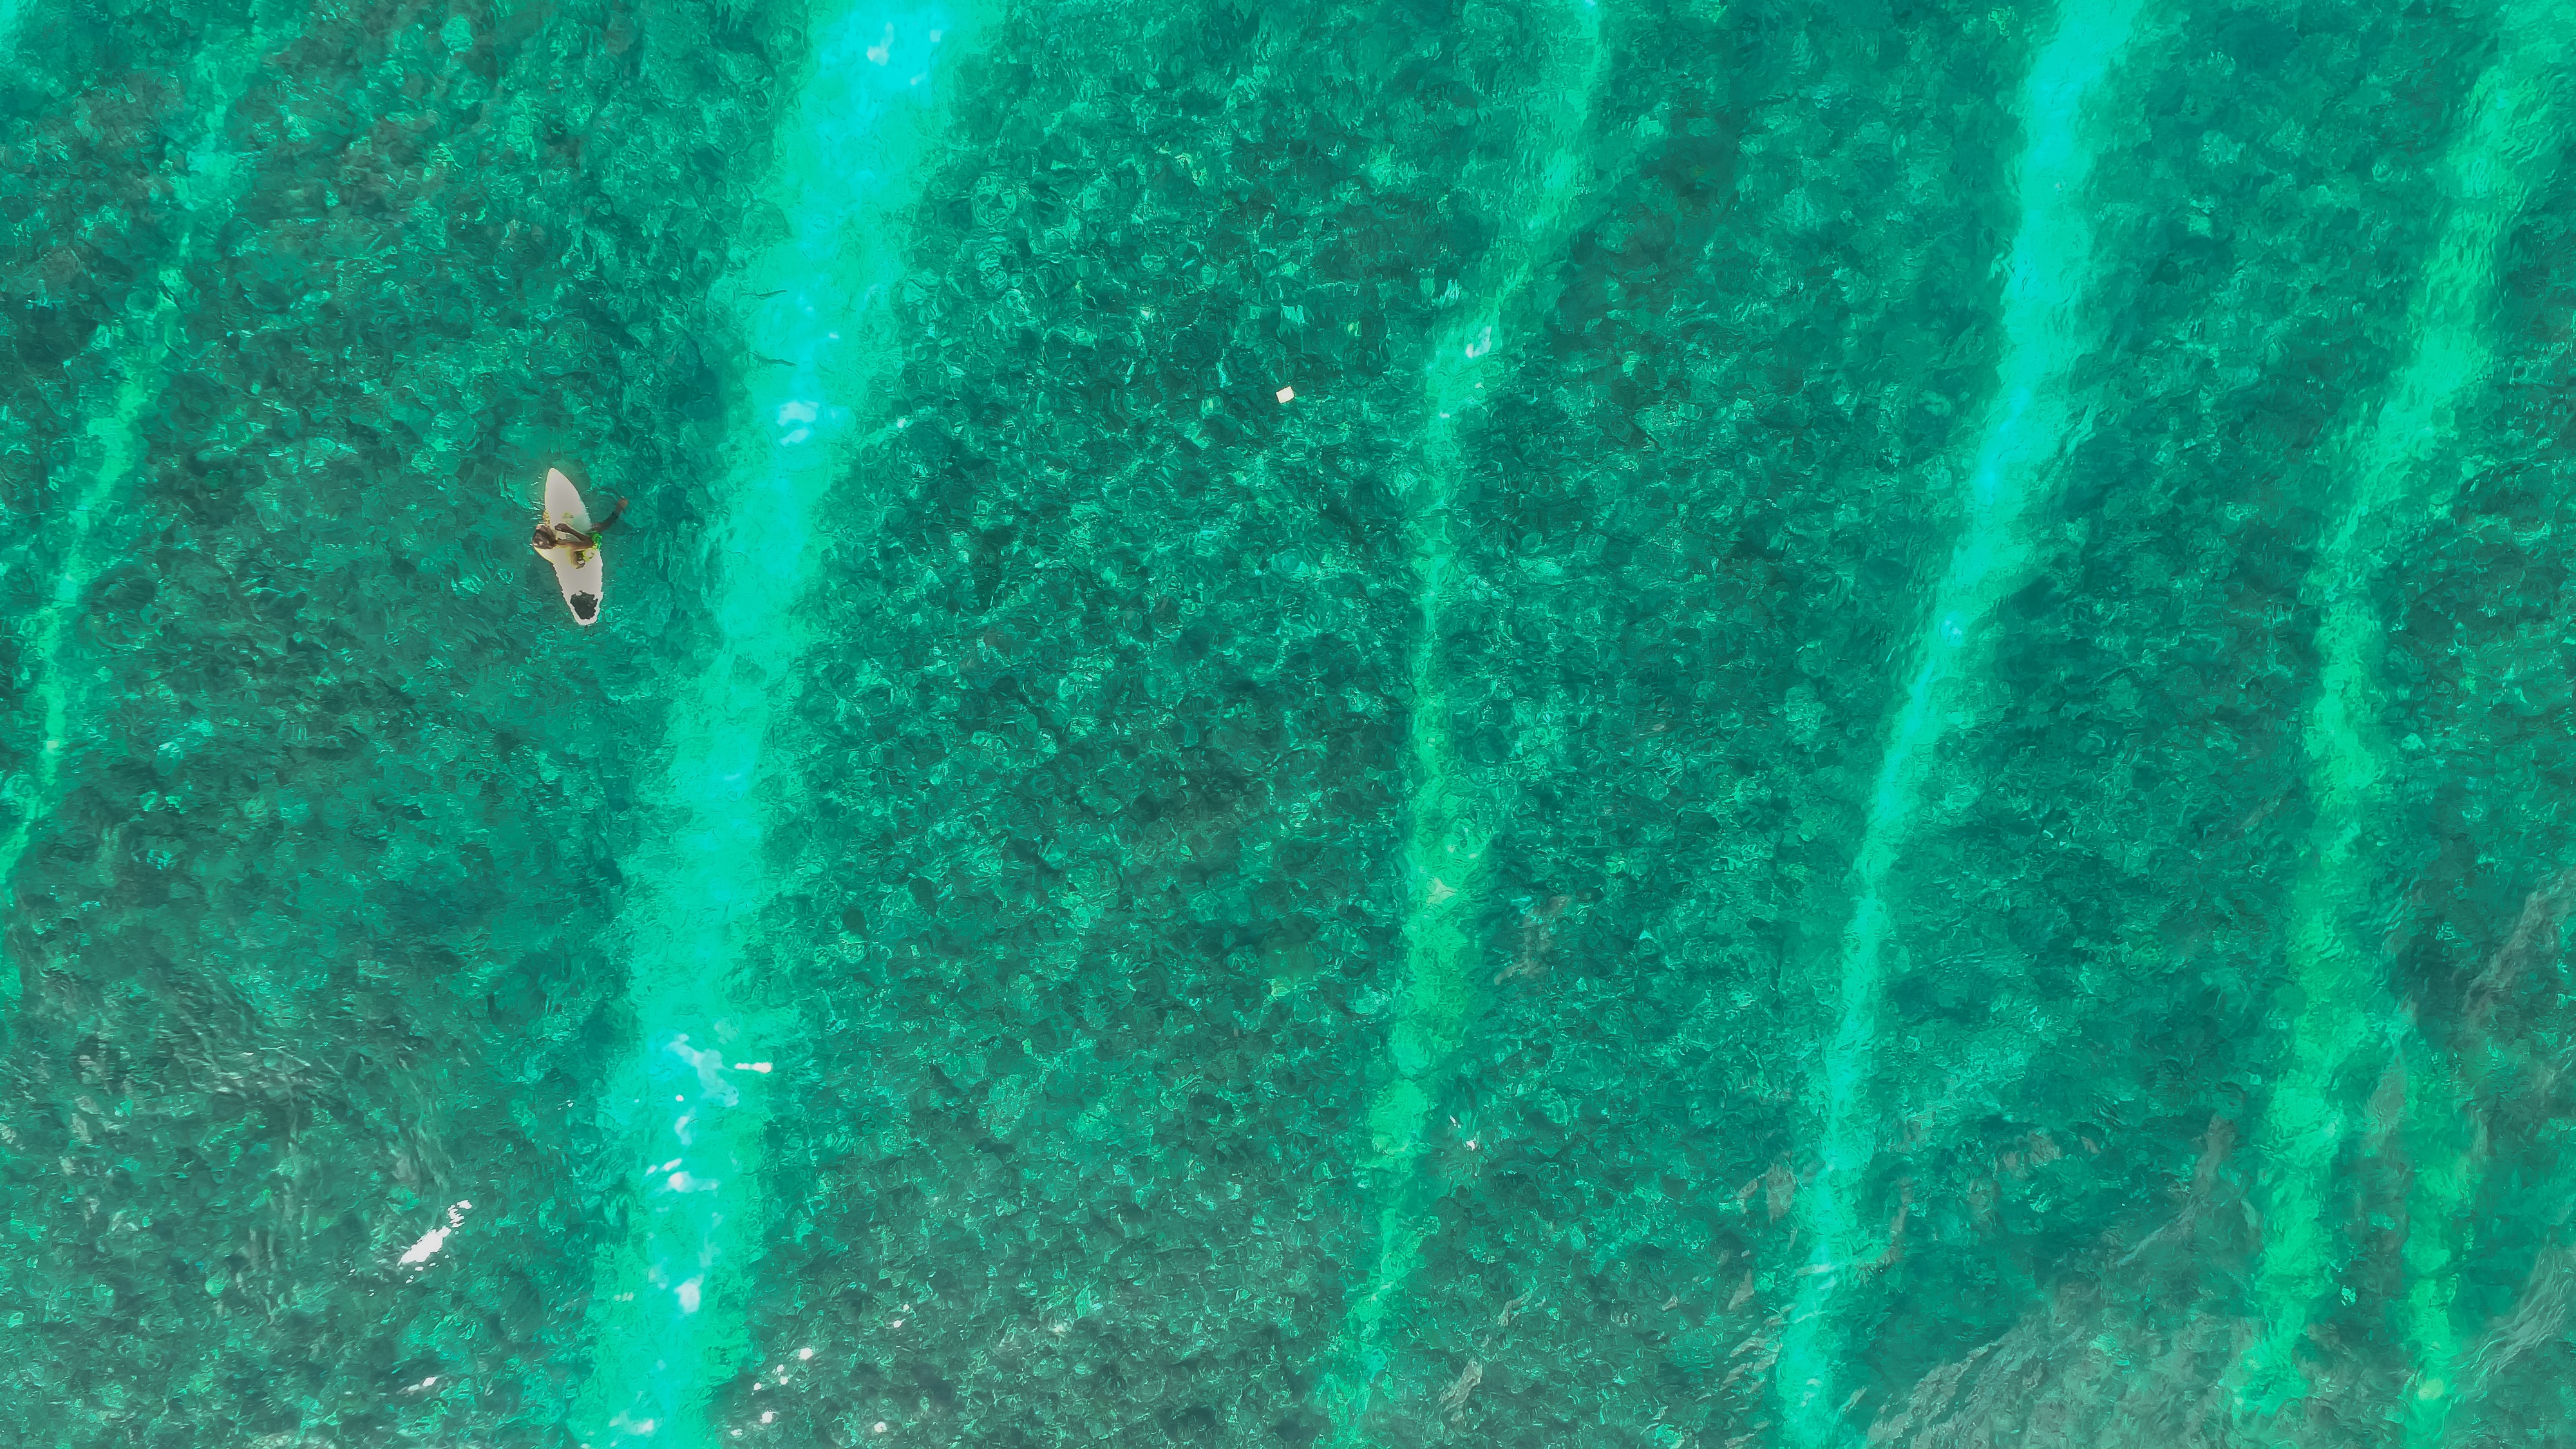 An overhead drone shot of a solitary surfer paddling the calm green waters at Male, Maldives